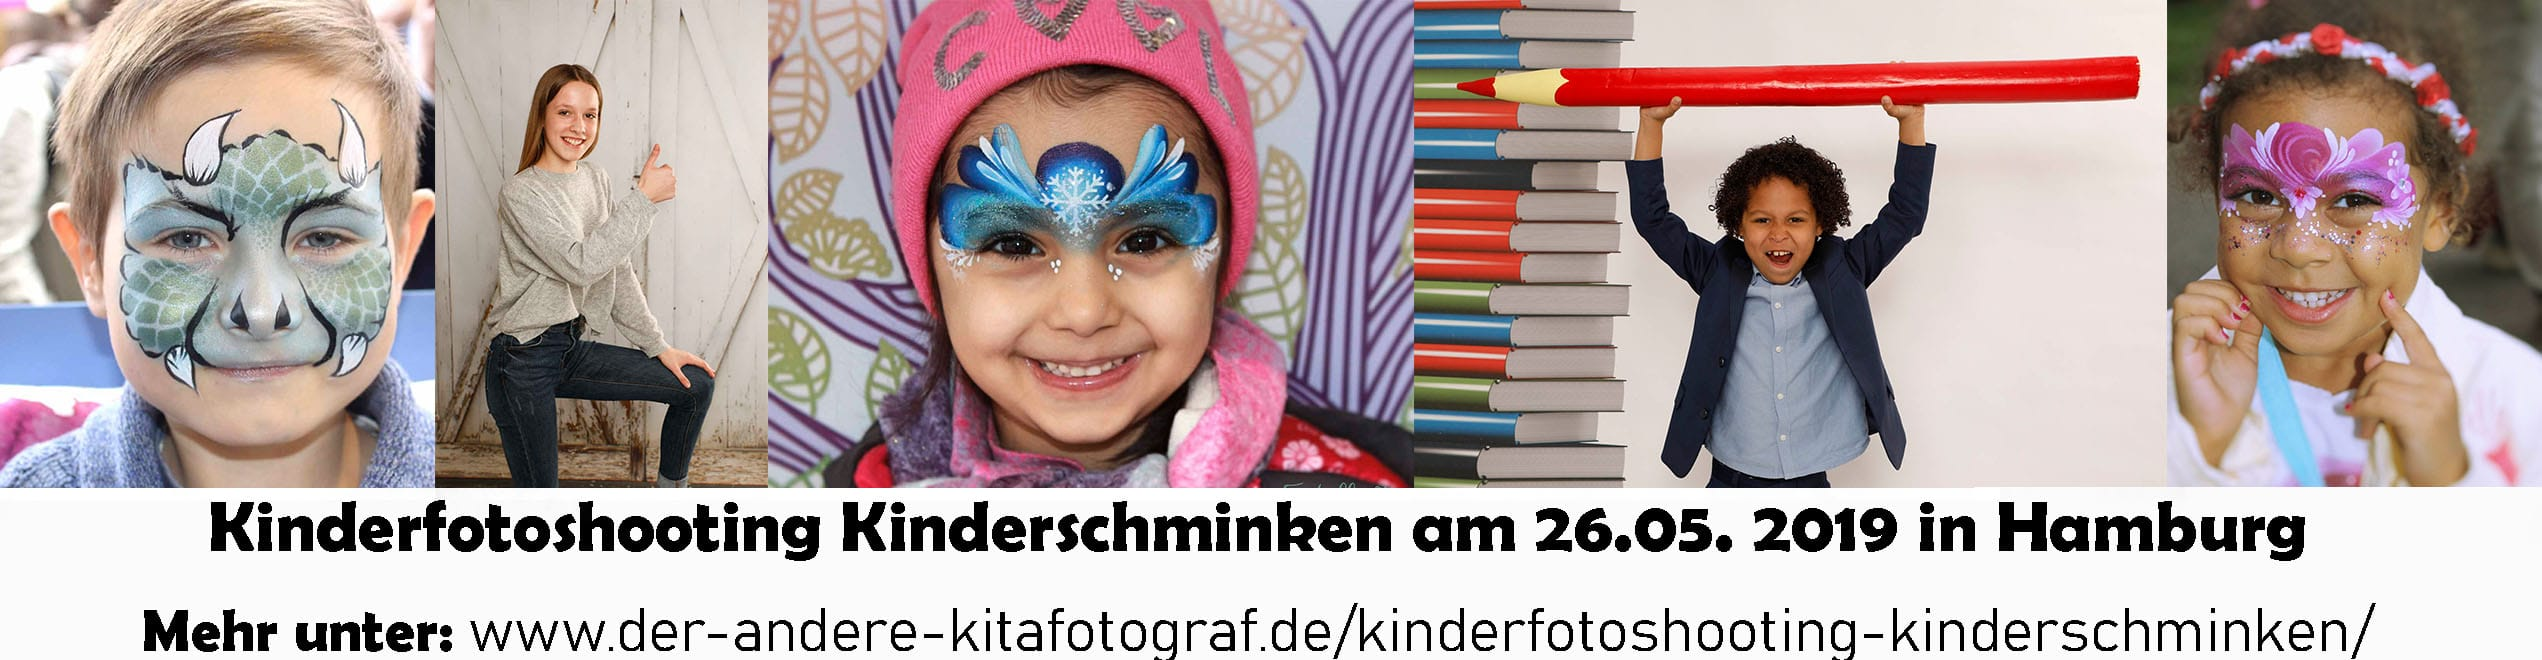 Kinderfotoshooting Kinderschminken in Hamburg